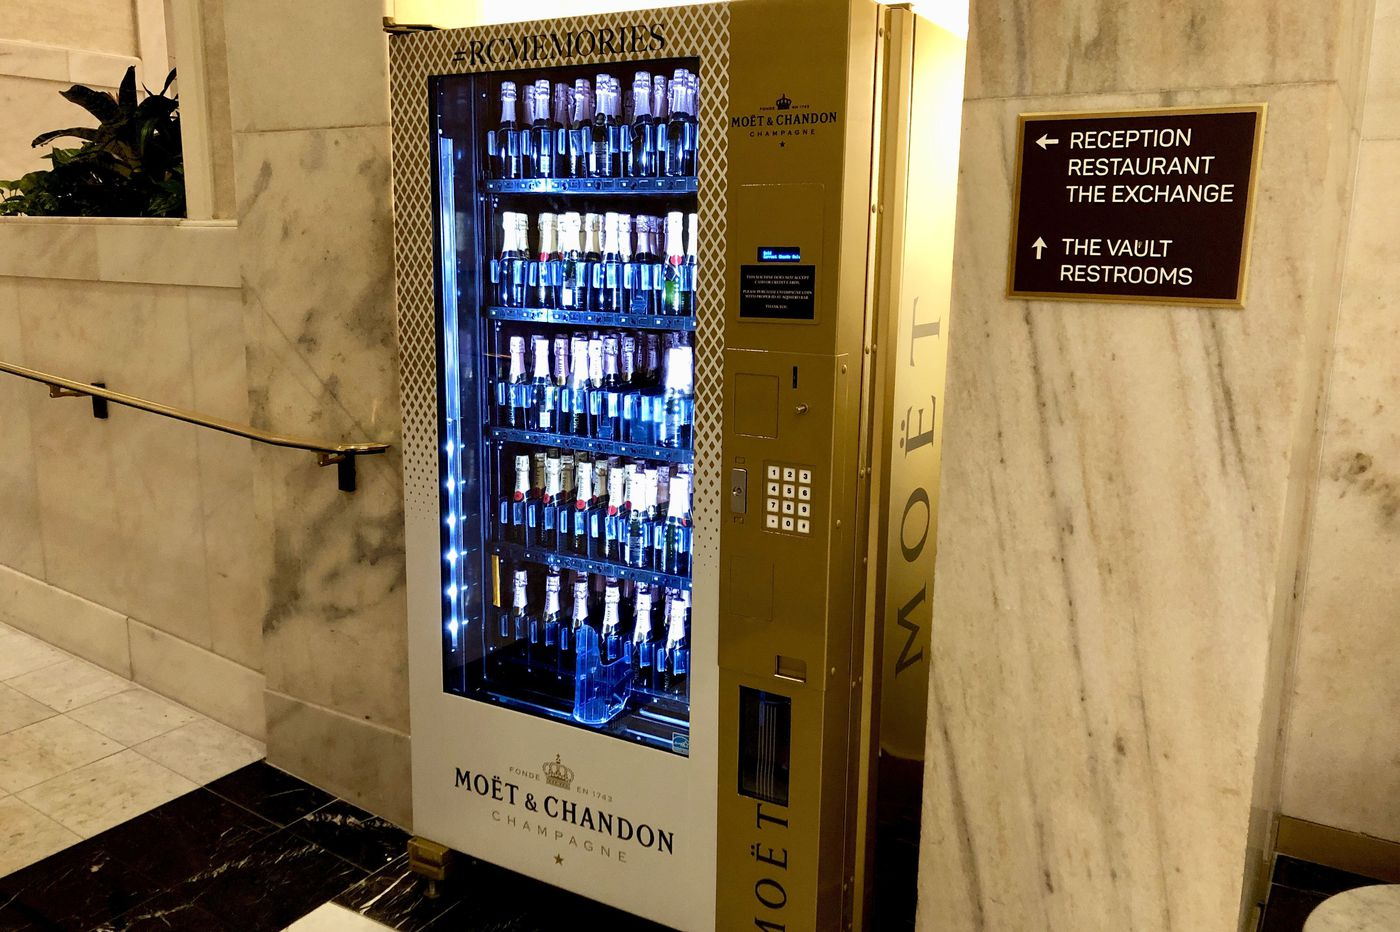 Champagne vending machine pops up in a Philly hotel lobby